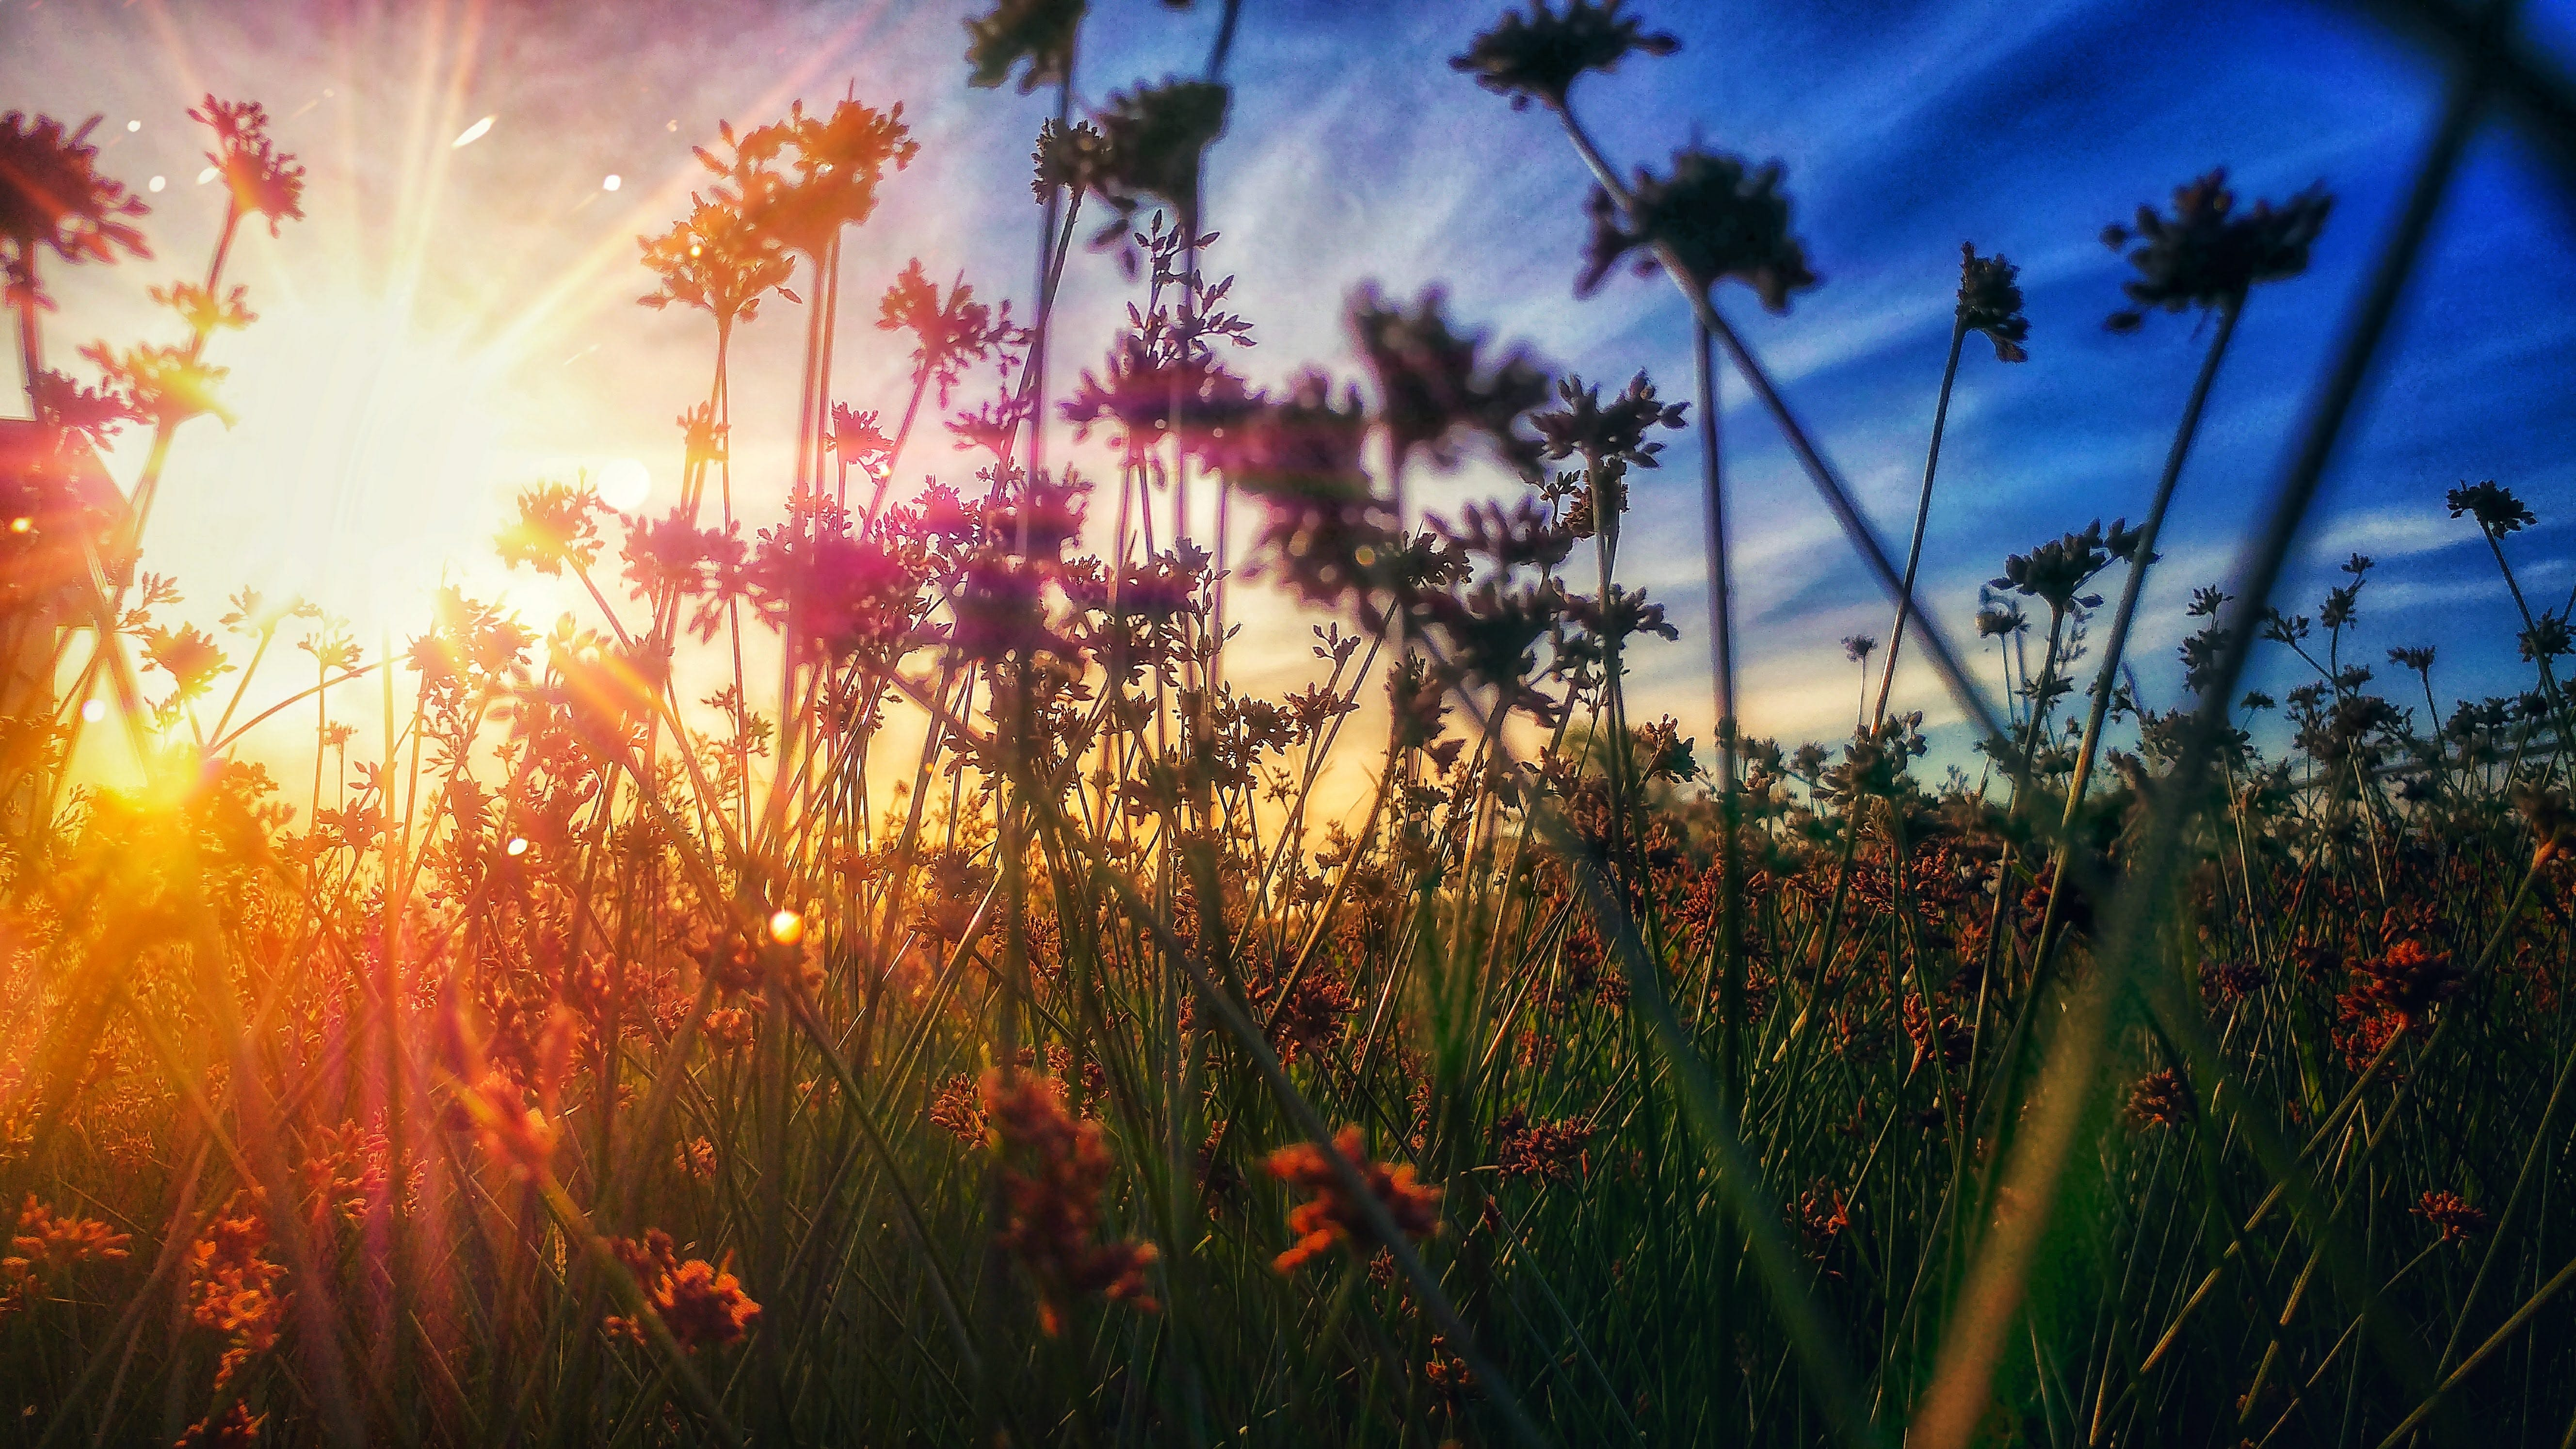 Free stock photo of beautiful, blue skies, colorful, Grassy Fields